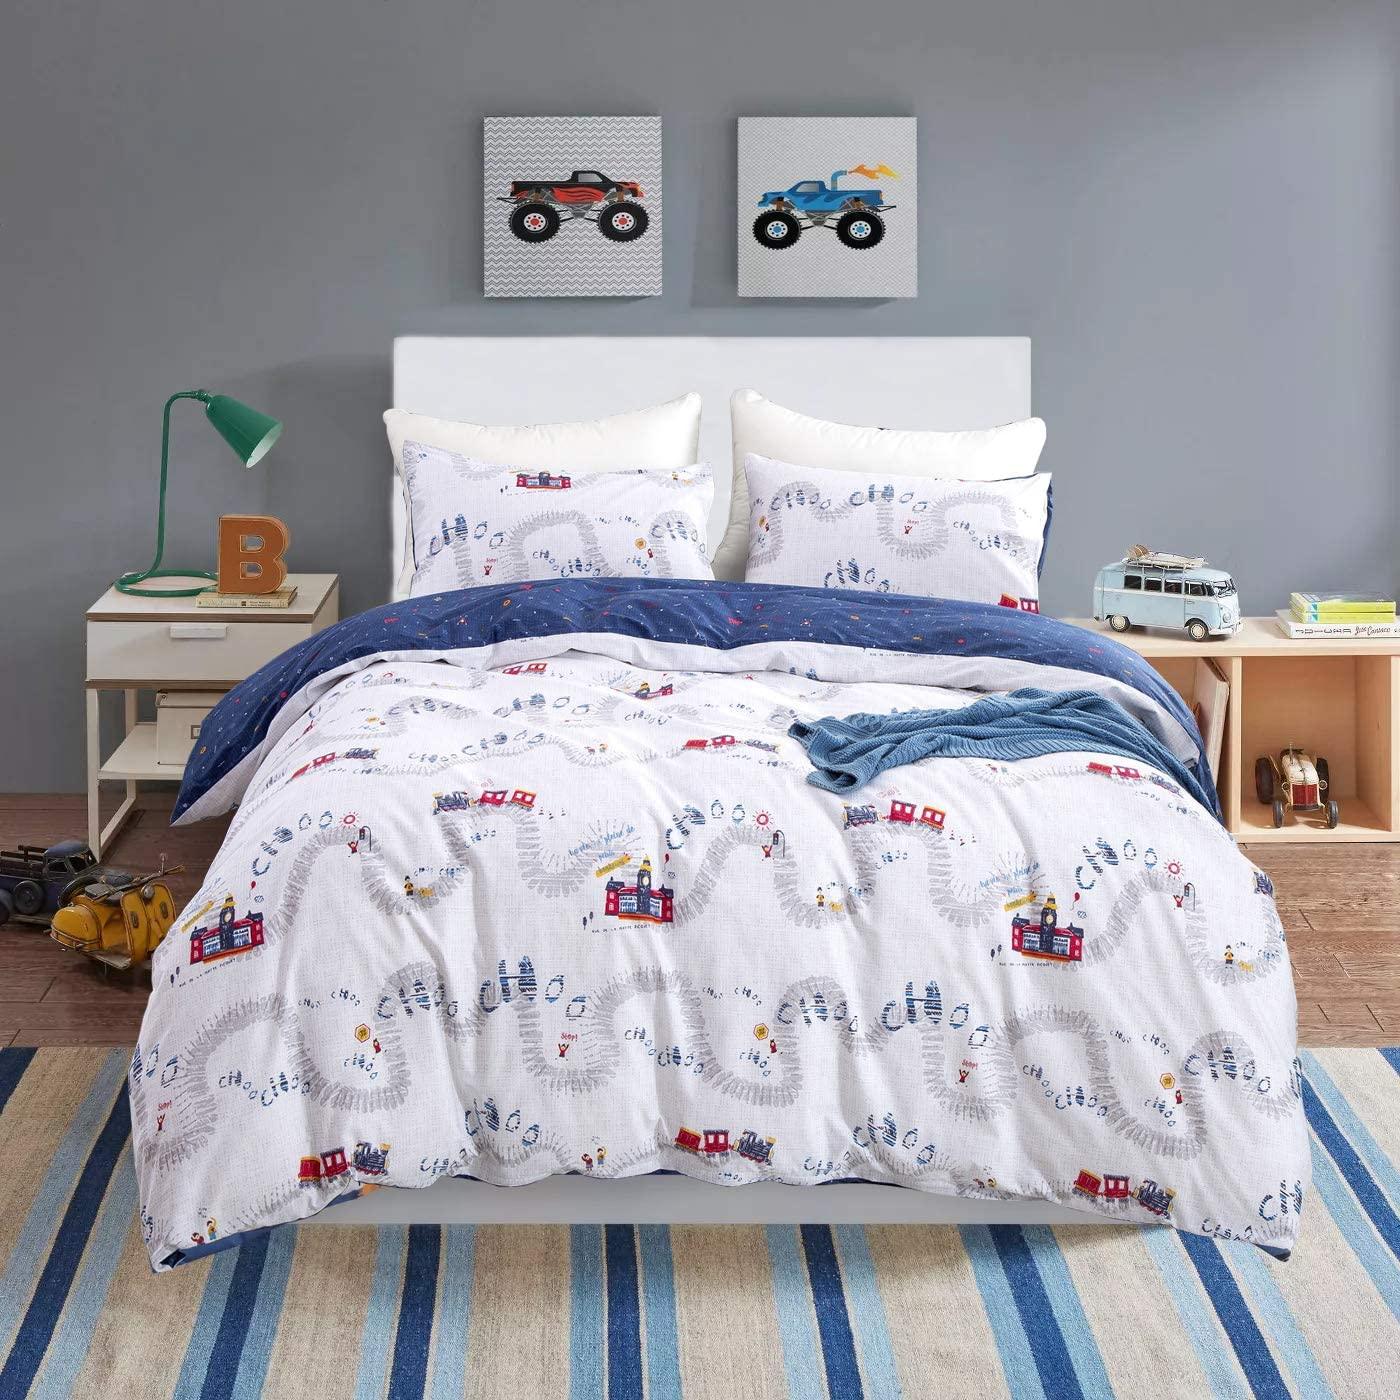 Wellboo Boys Bedding Sets Train Station Cartoon Duvet Covers Queen Full Kids Children Bedding Covers Cotton Transport White and Blue Duvet Covers Reversible Travel Durable Breathable Healthy No Insert